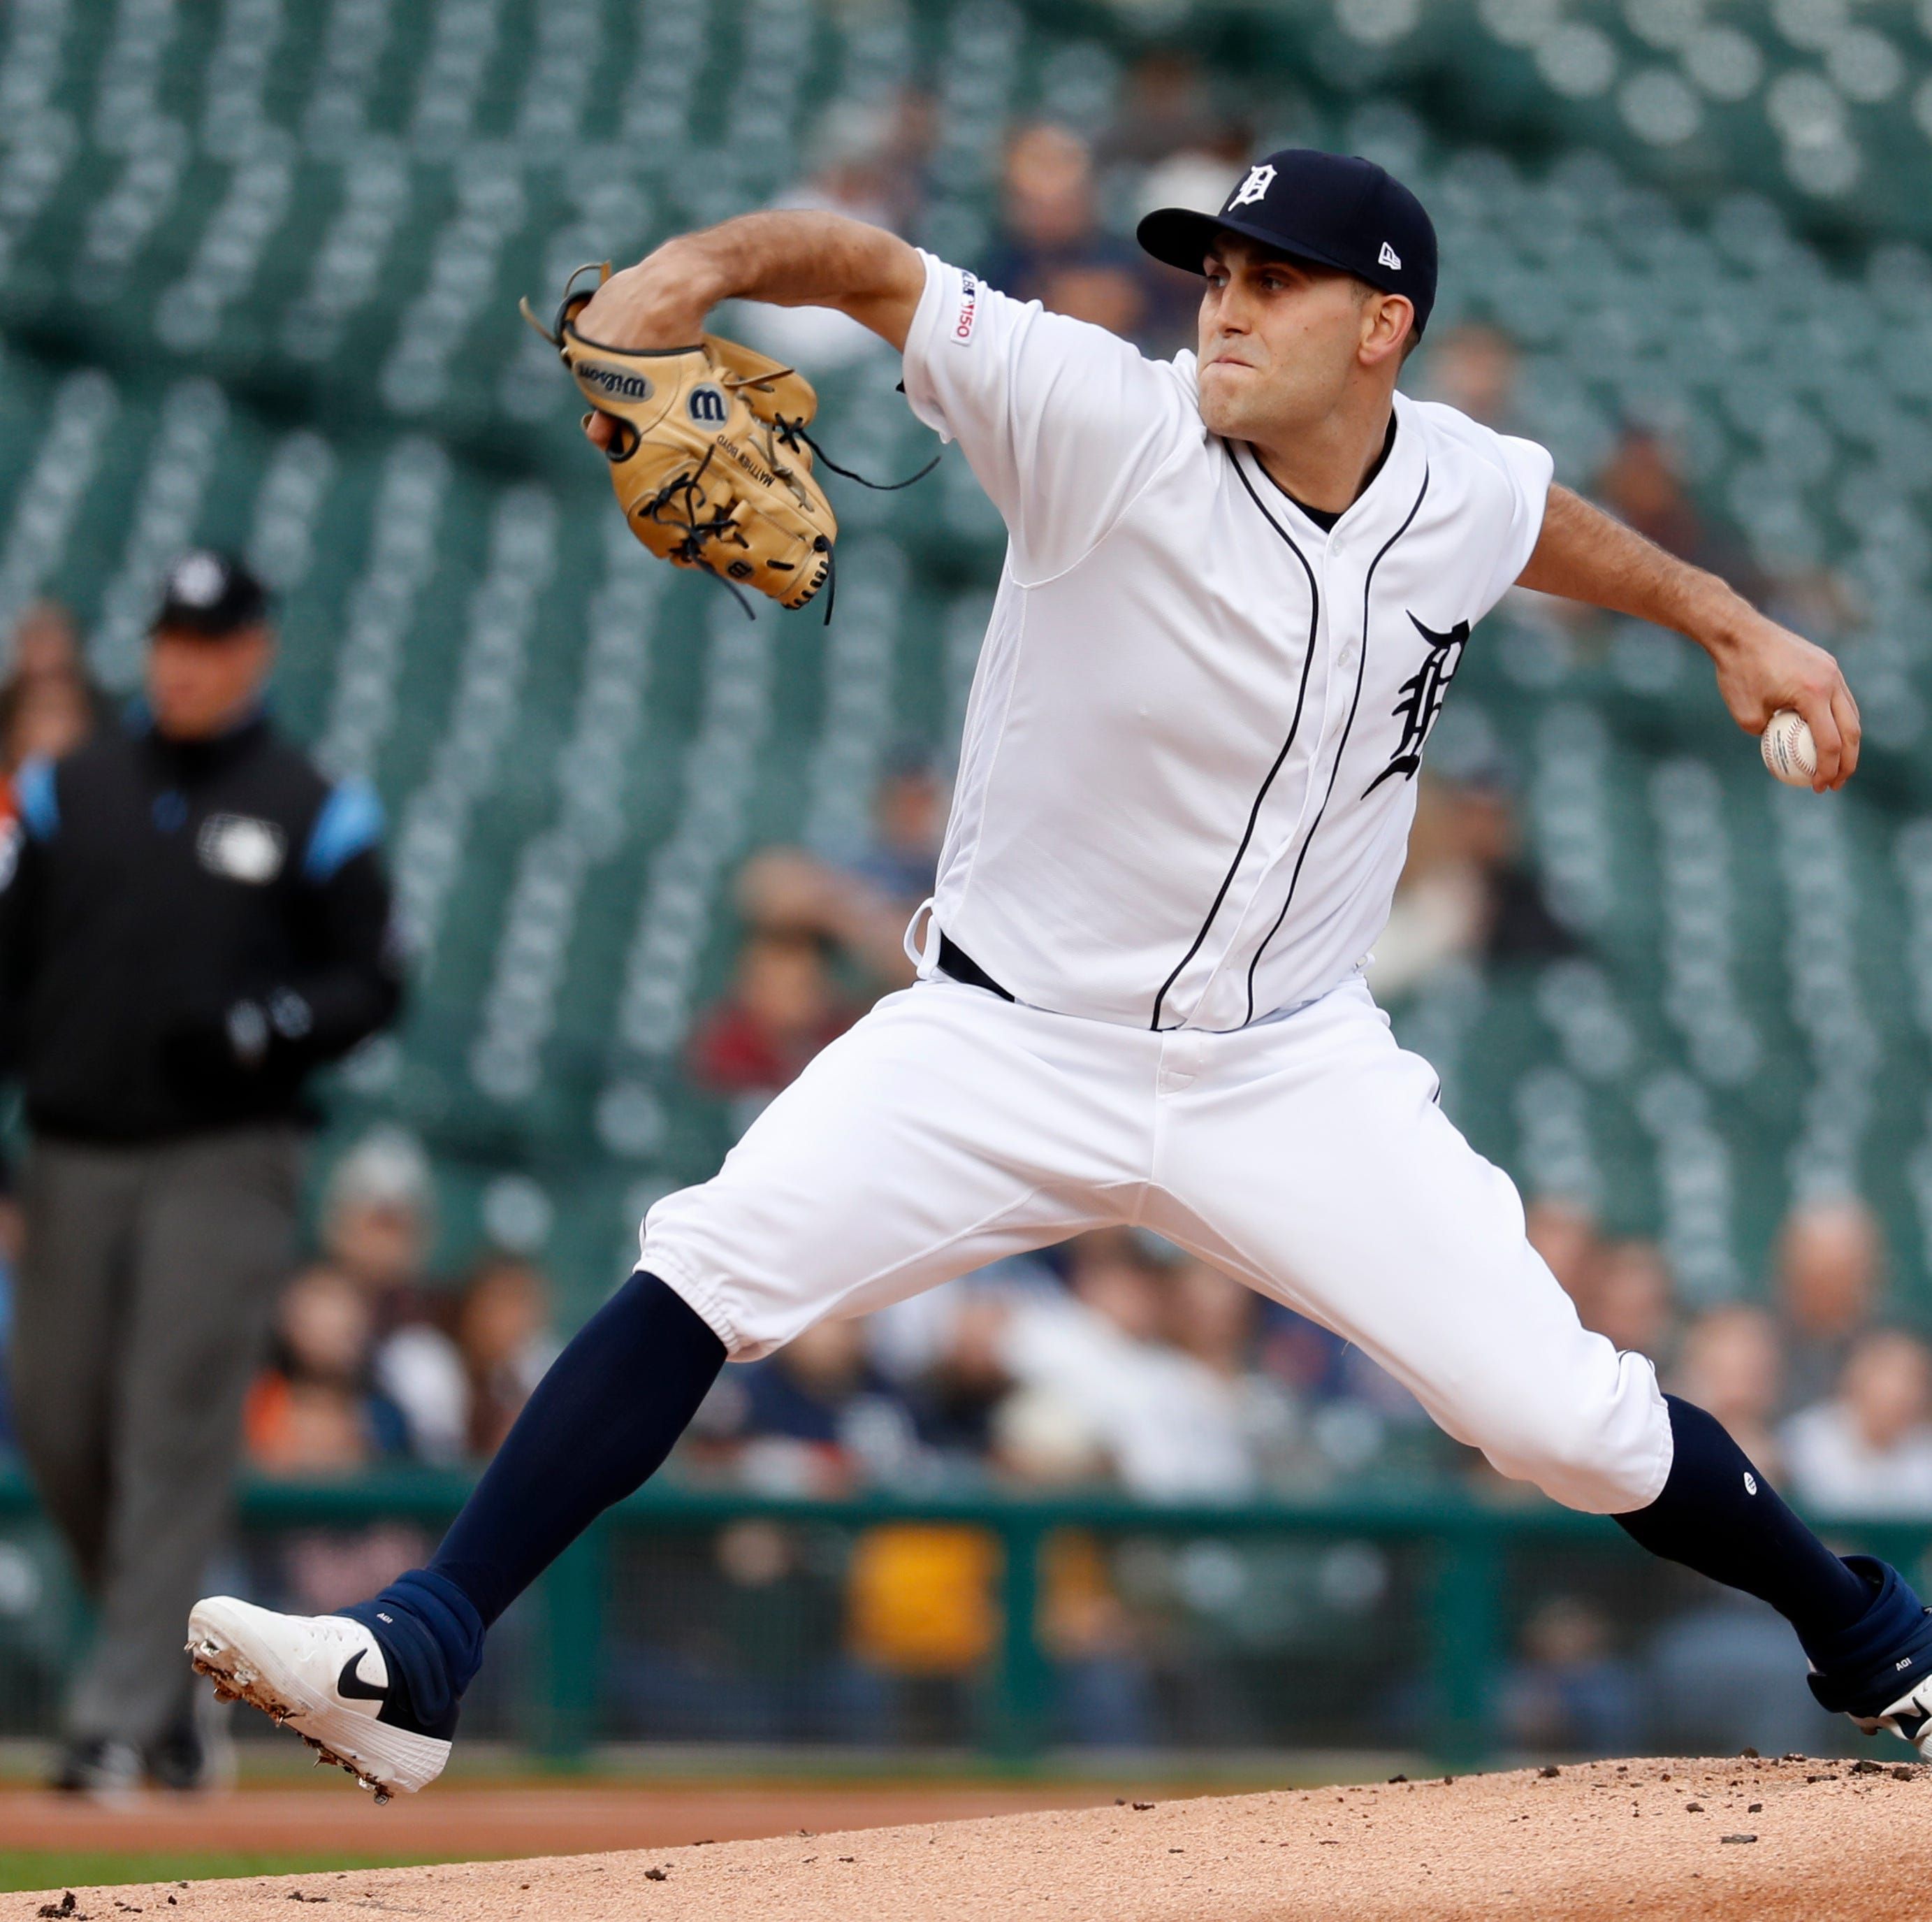 Detroit Tigers vs. Houston Astros: Time, TV, starting pitchers